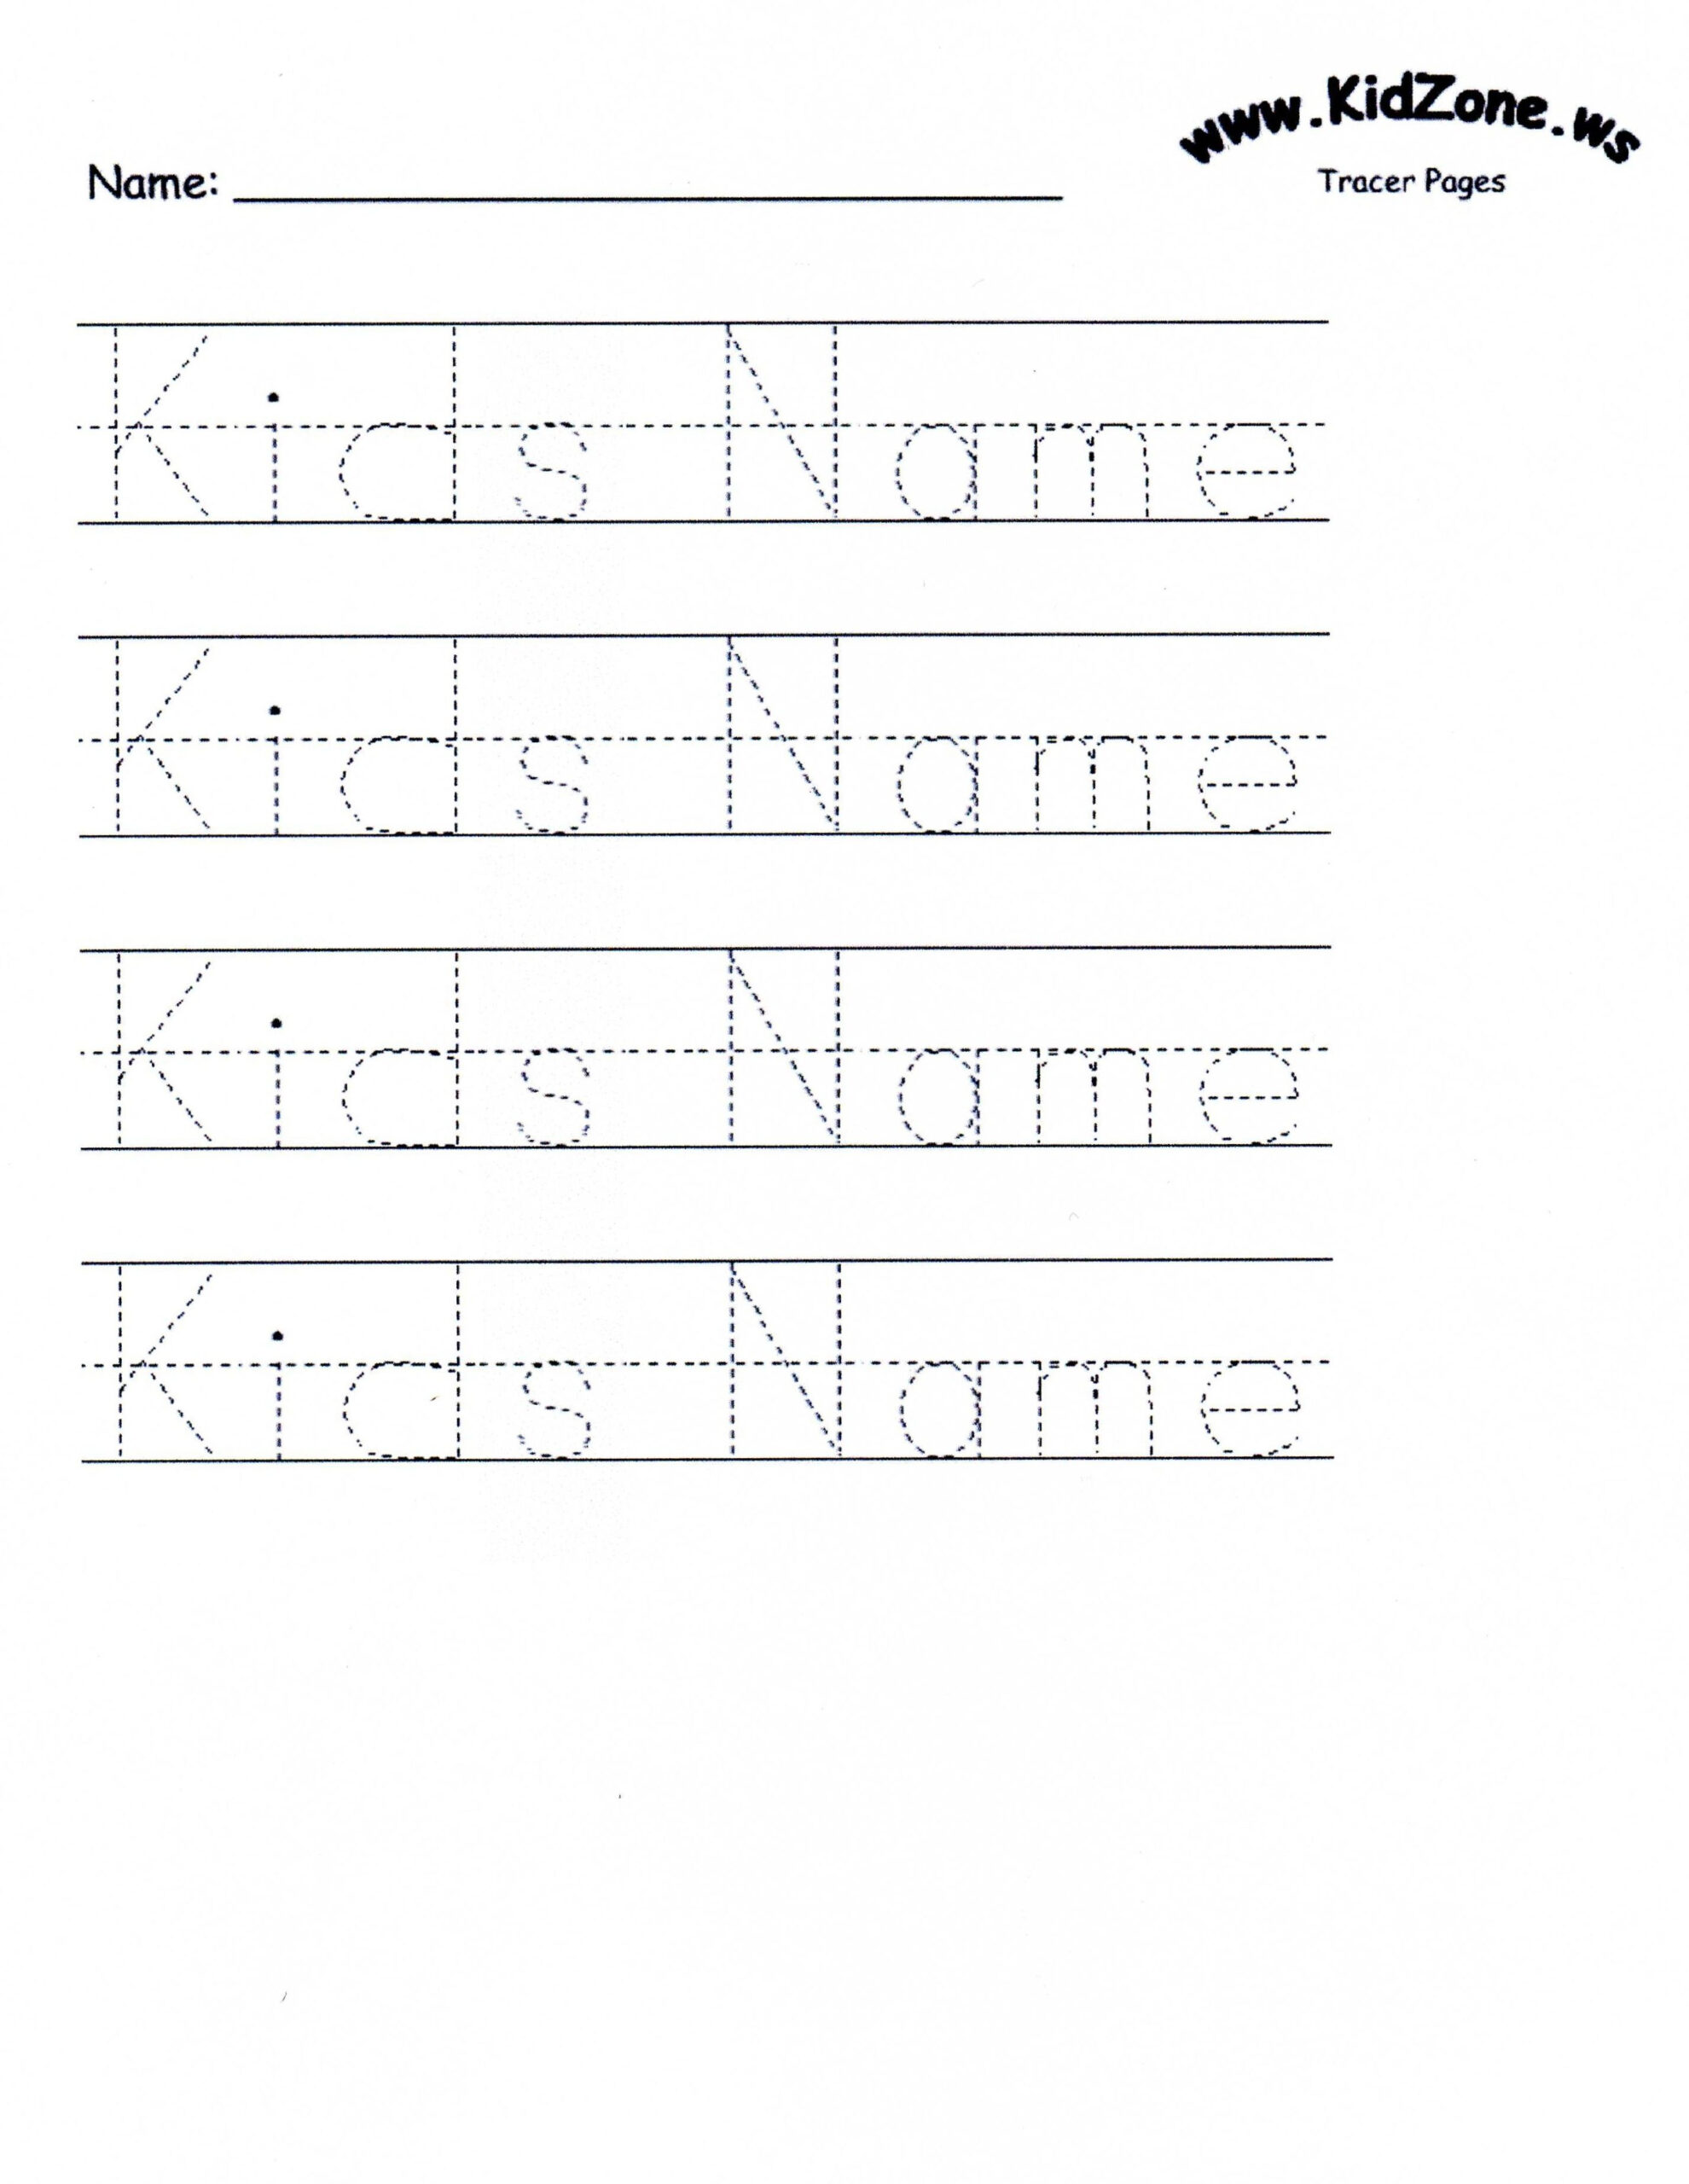 Custom Tracer Pages | Tracing Worksheets Preschool, Name in Name Tracing Letters